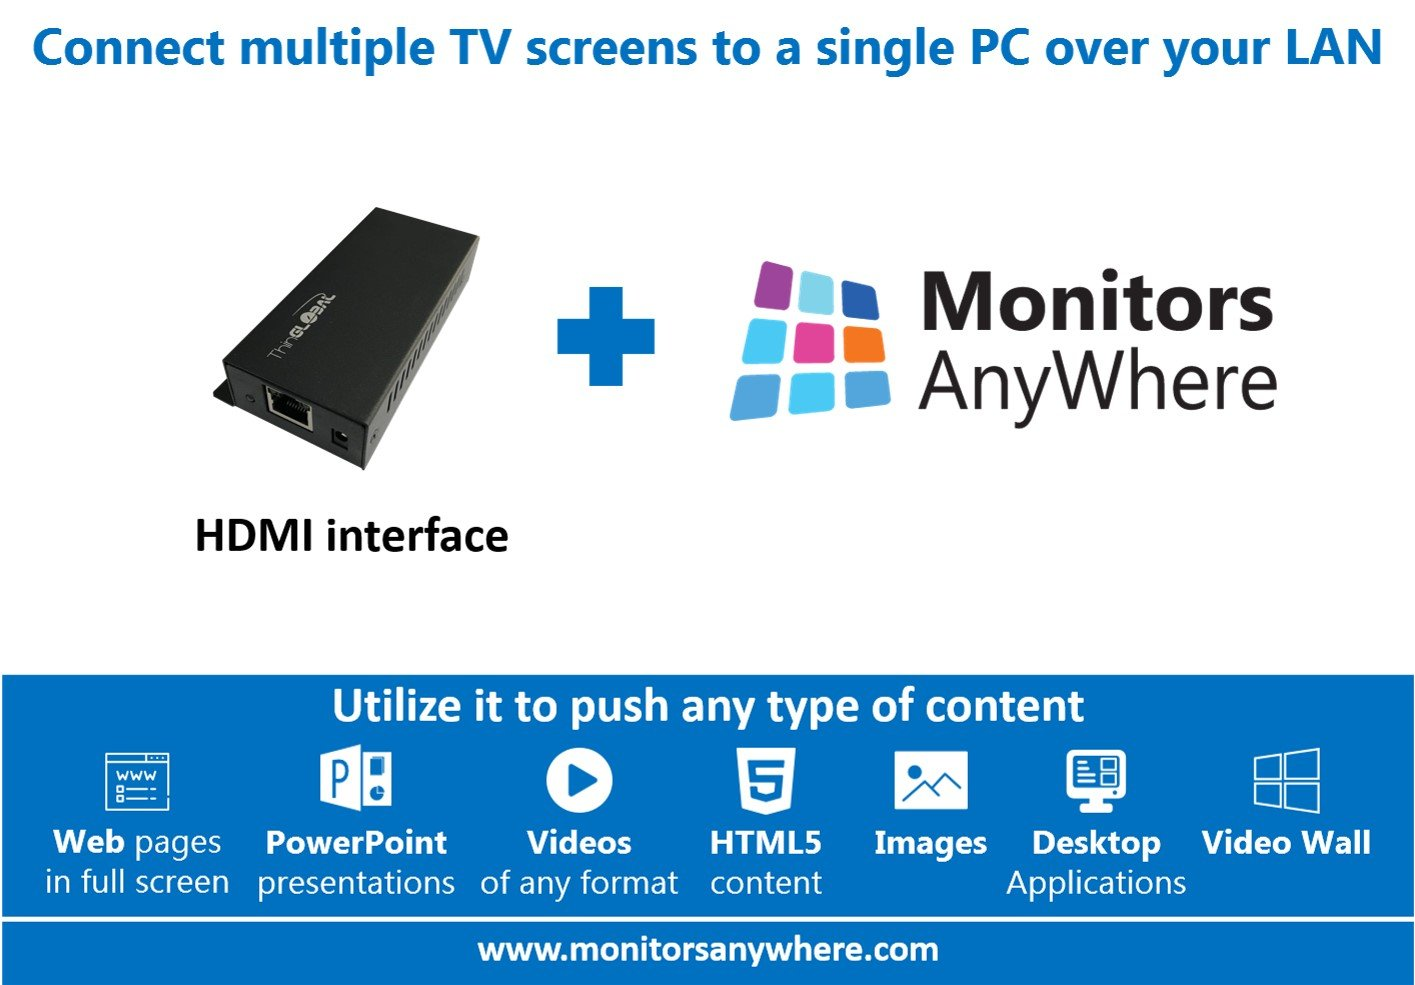 Monitors AnyWhere Connect - Display your content on multiple monitors using a single PC! HDMI over LAN, Video Extender, ThinGlobal MiniPoint Digital Signage Lite